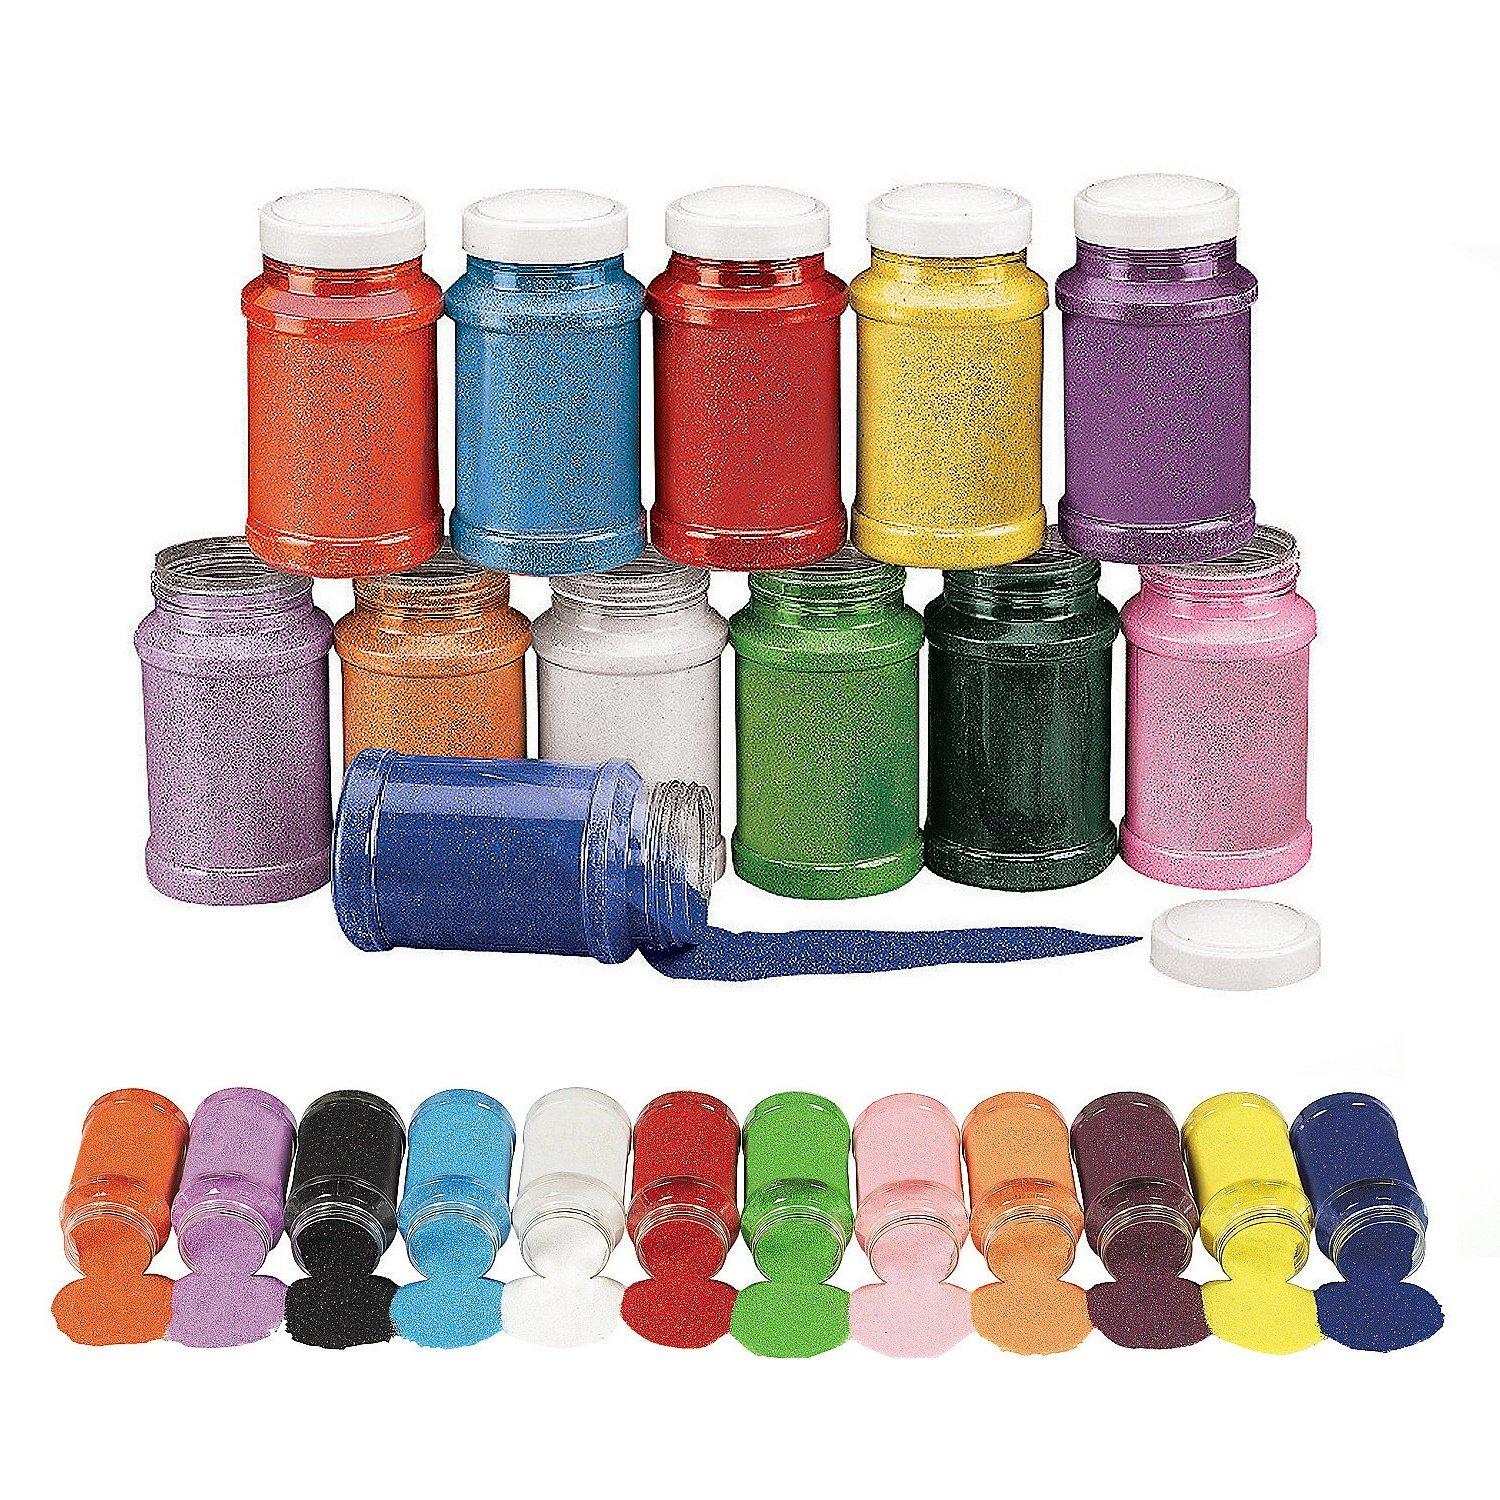 Colorful Rainbow Craft Sand Assortment (12 Pc) 22 Oz. Per Bottle, 12 Huge Bottles